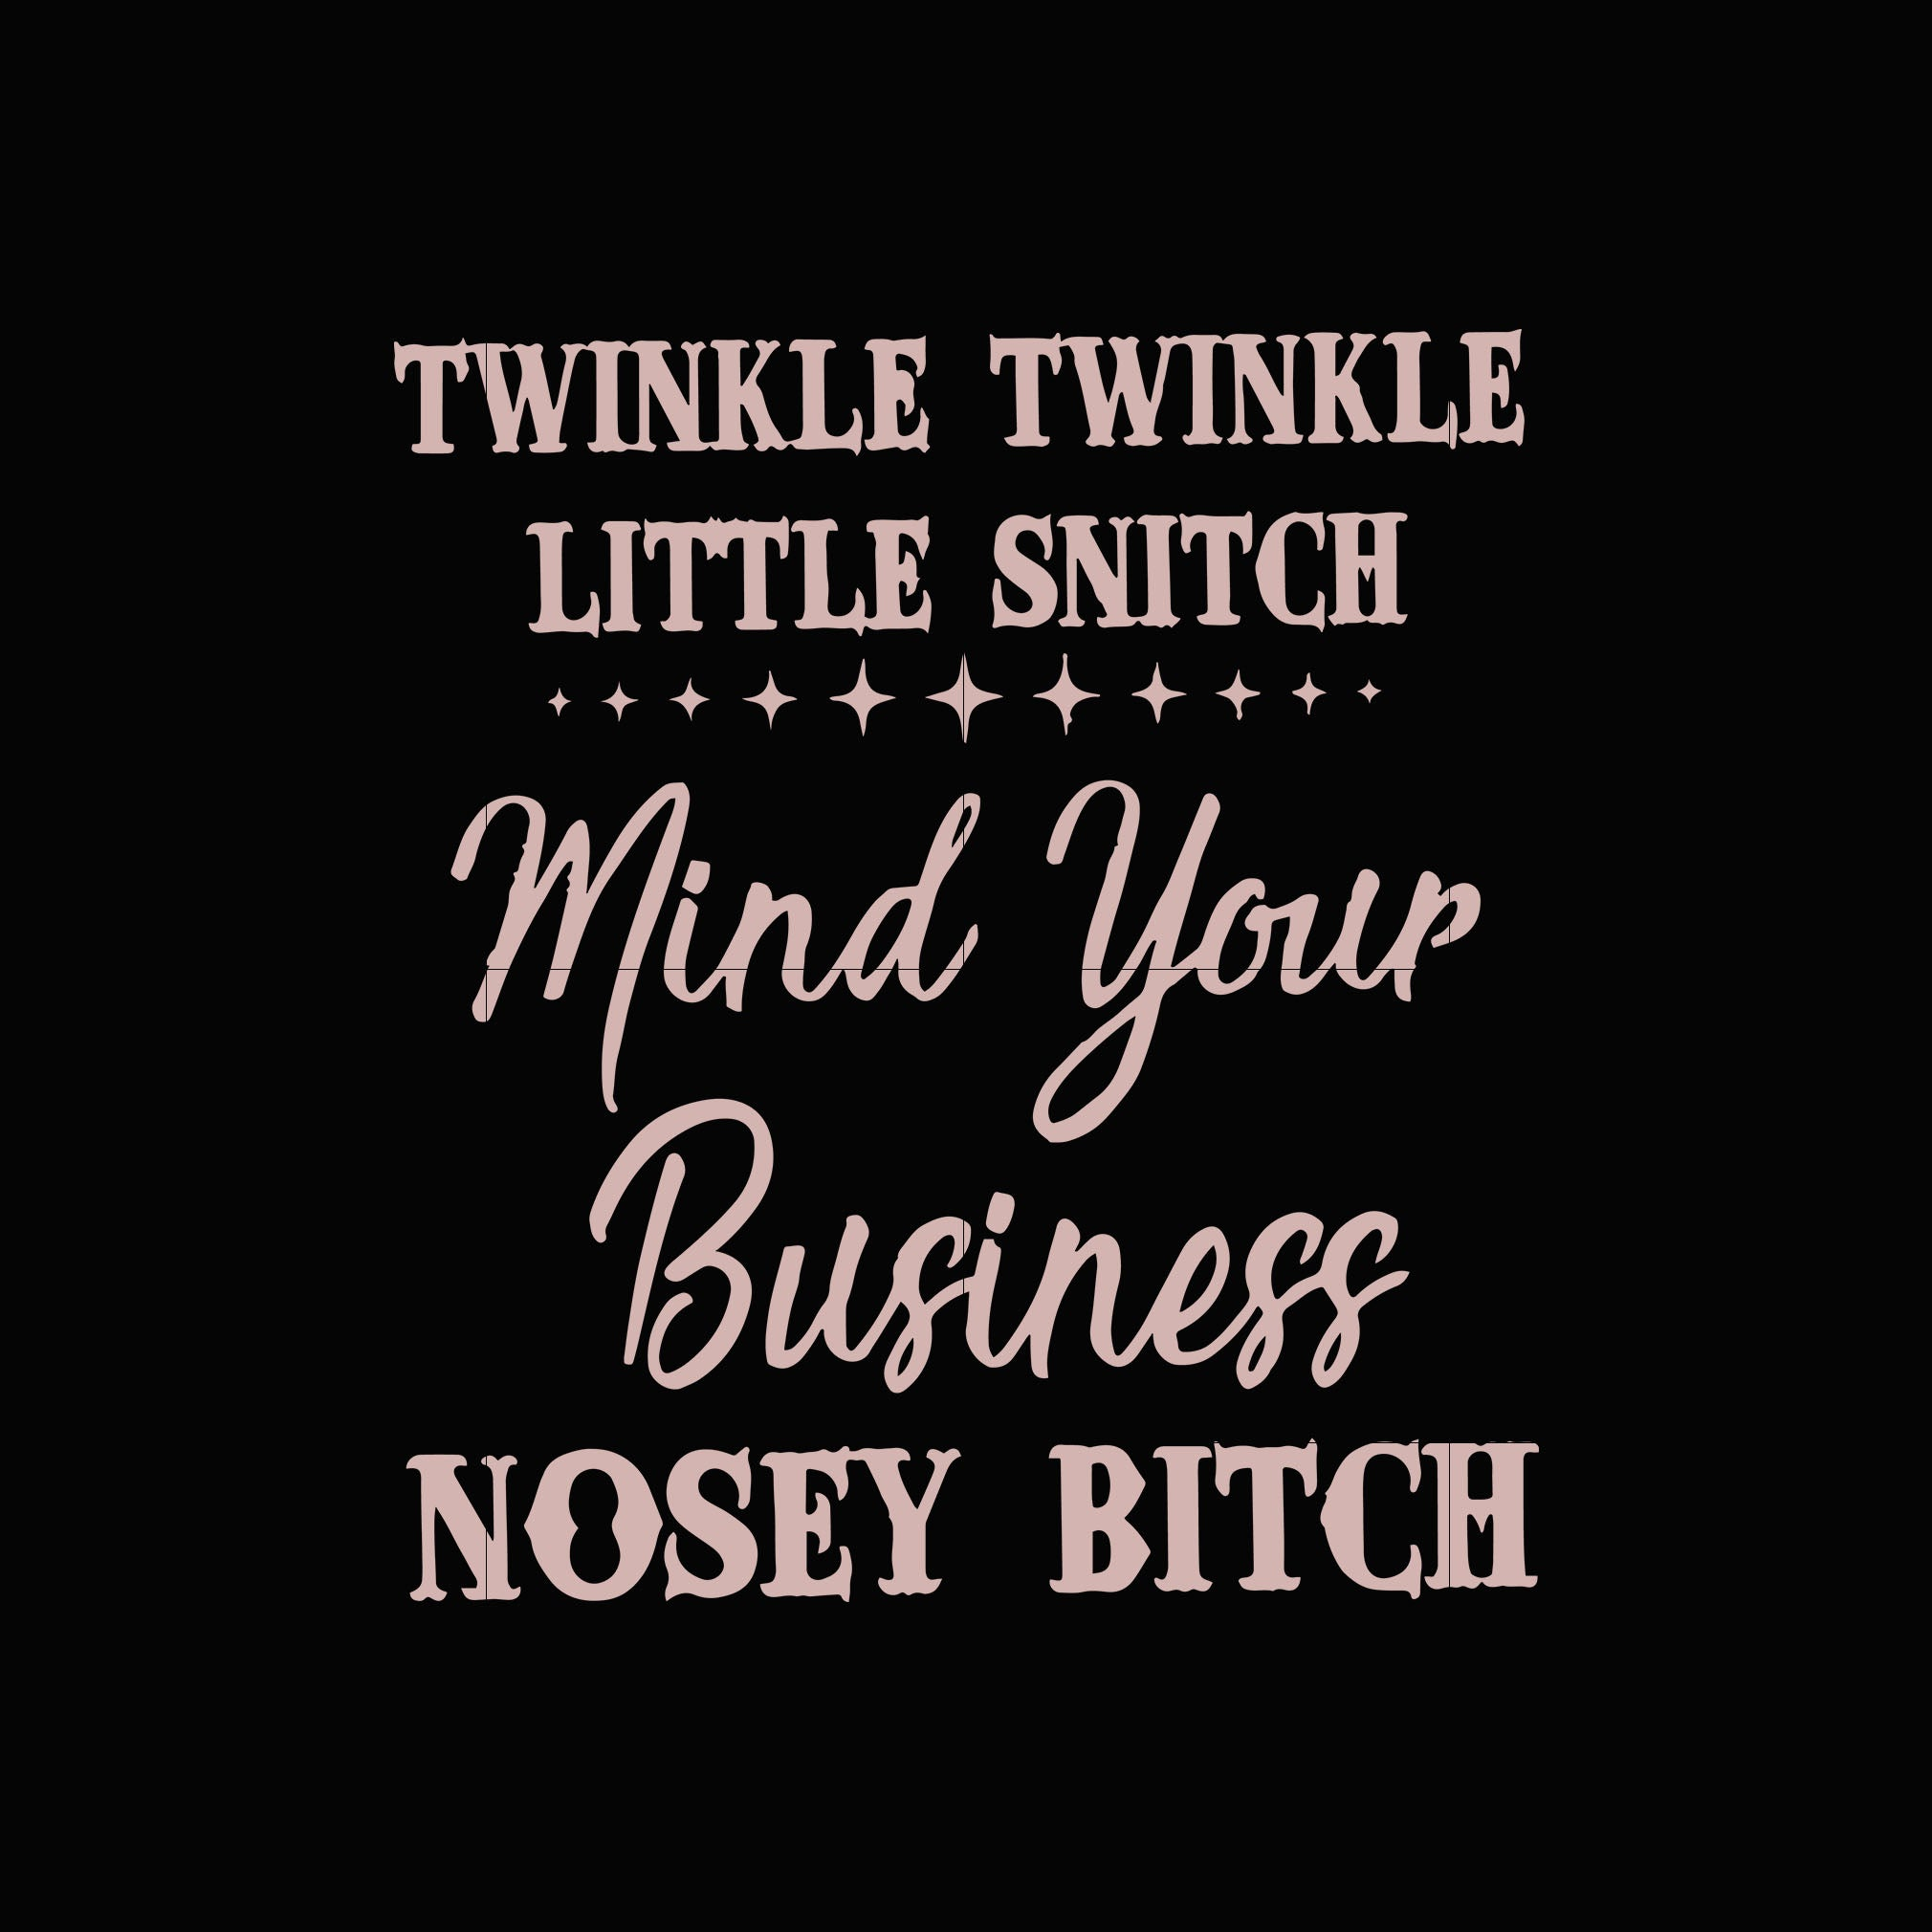 Twinkle twinkle little snitch mind your business nosey bitch svg,dxf,eps,png digital file